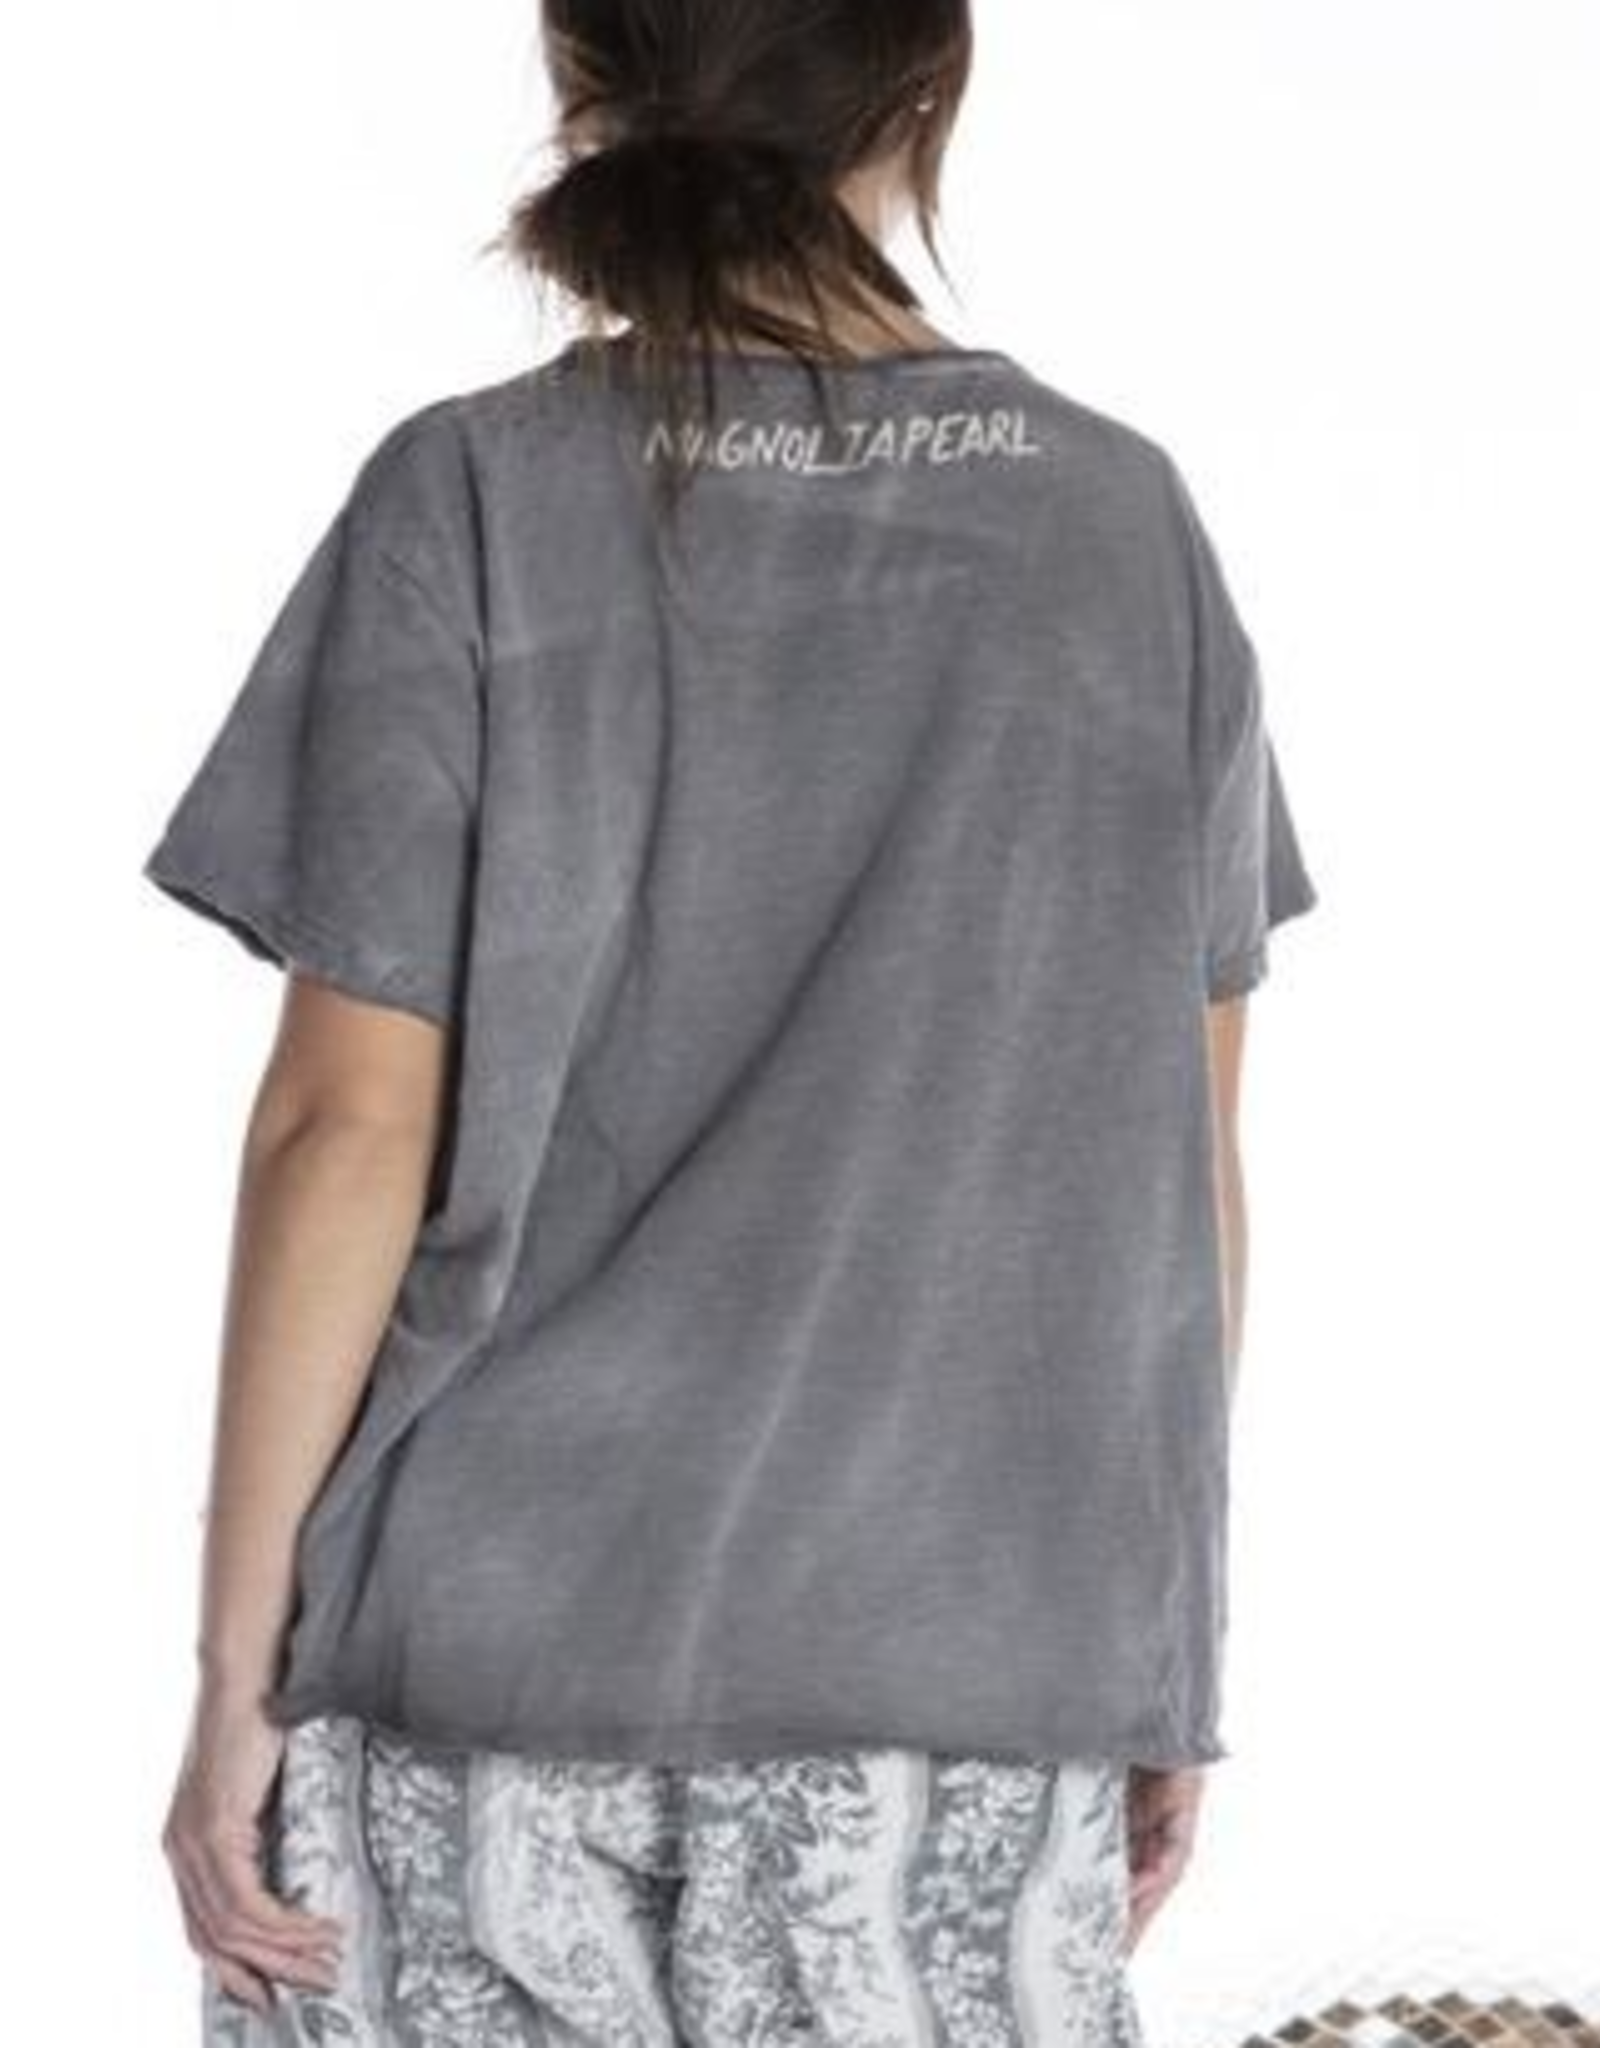 MAGNOLIA PEARL Beyond Space T